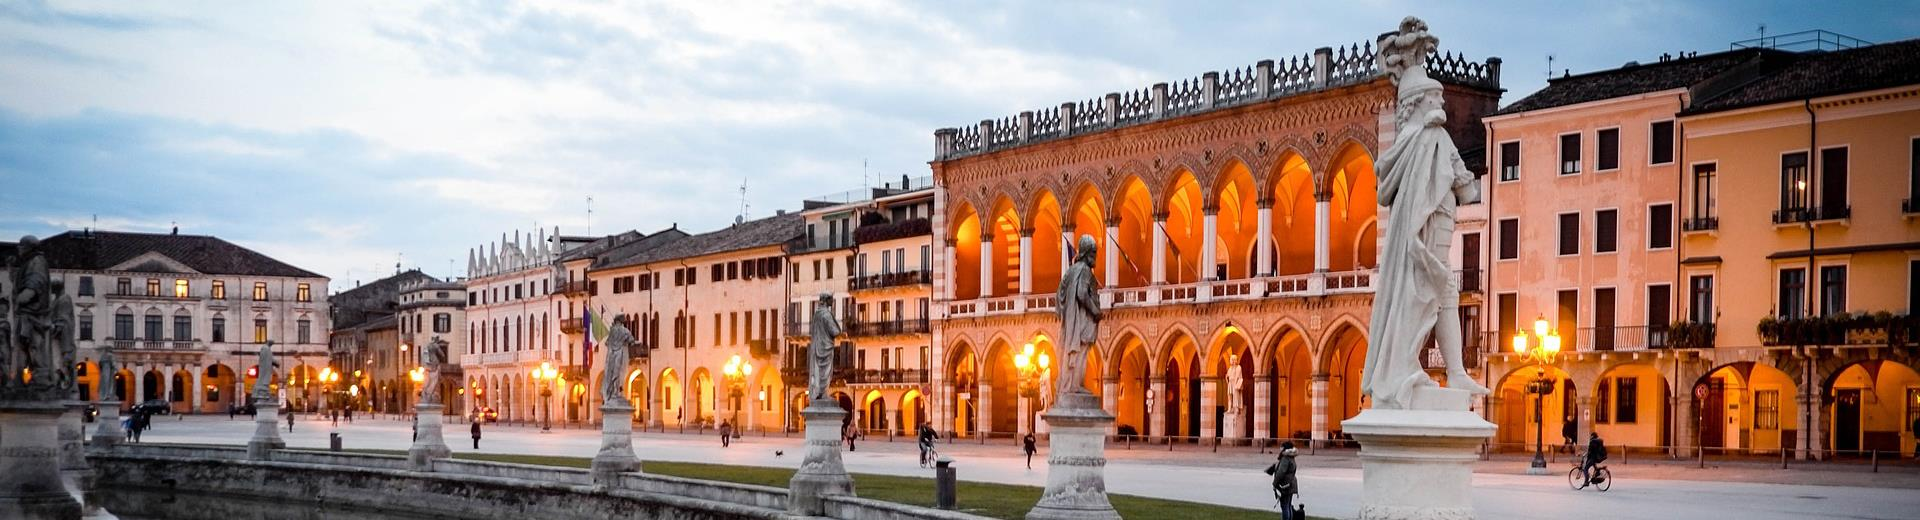 Looking for a hotel in Padua in a central location to go and discover the city? Book Best Western Hotel Biri!